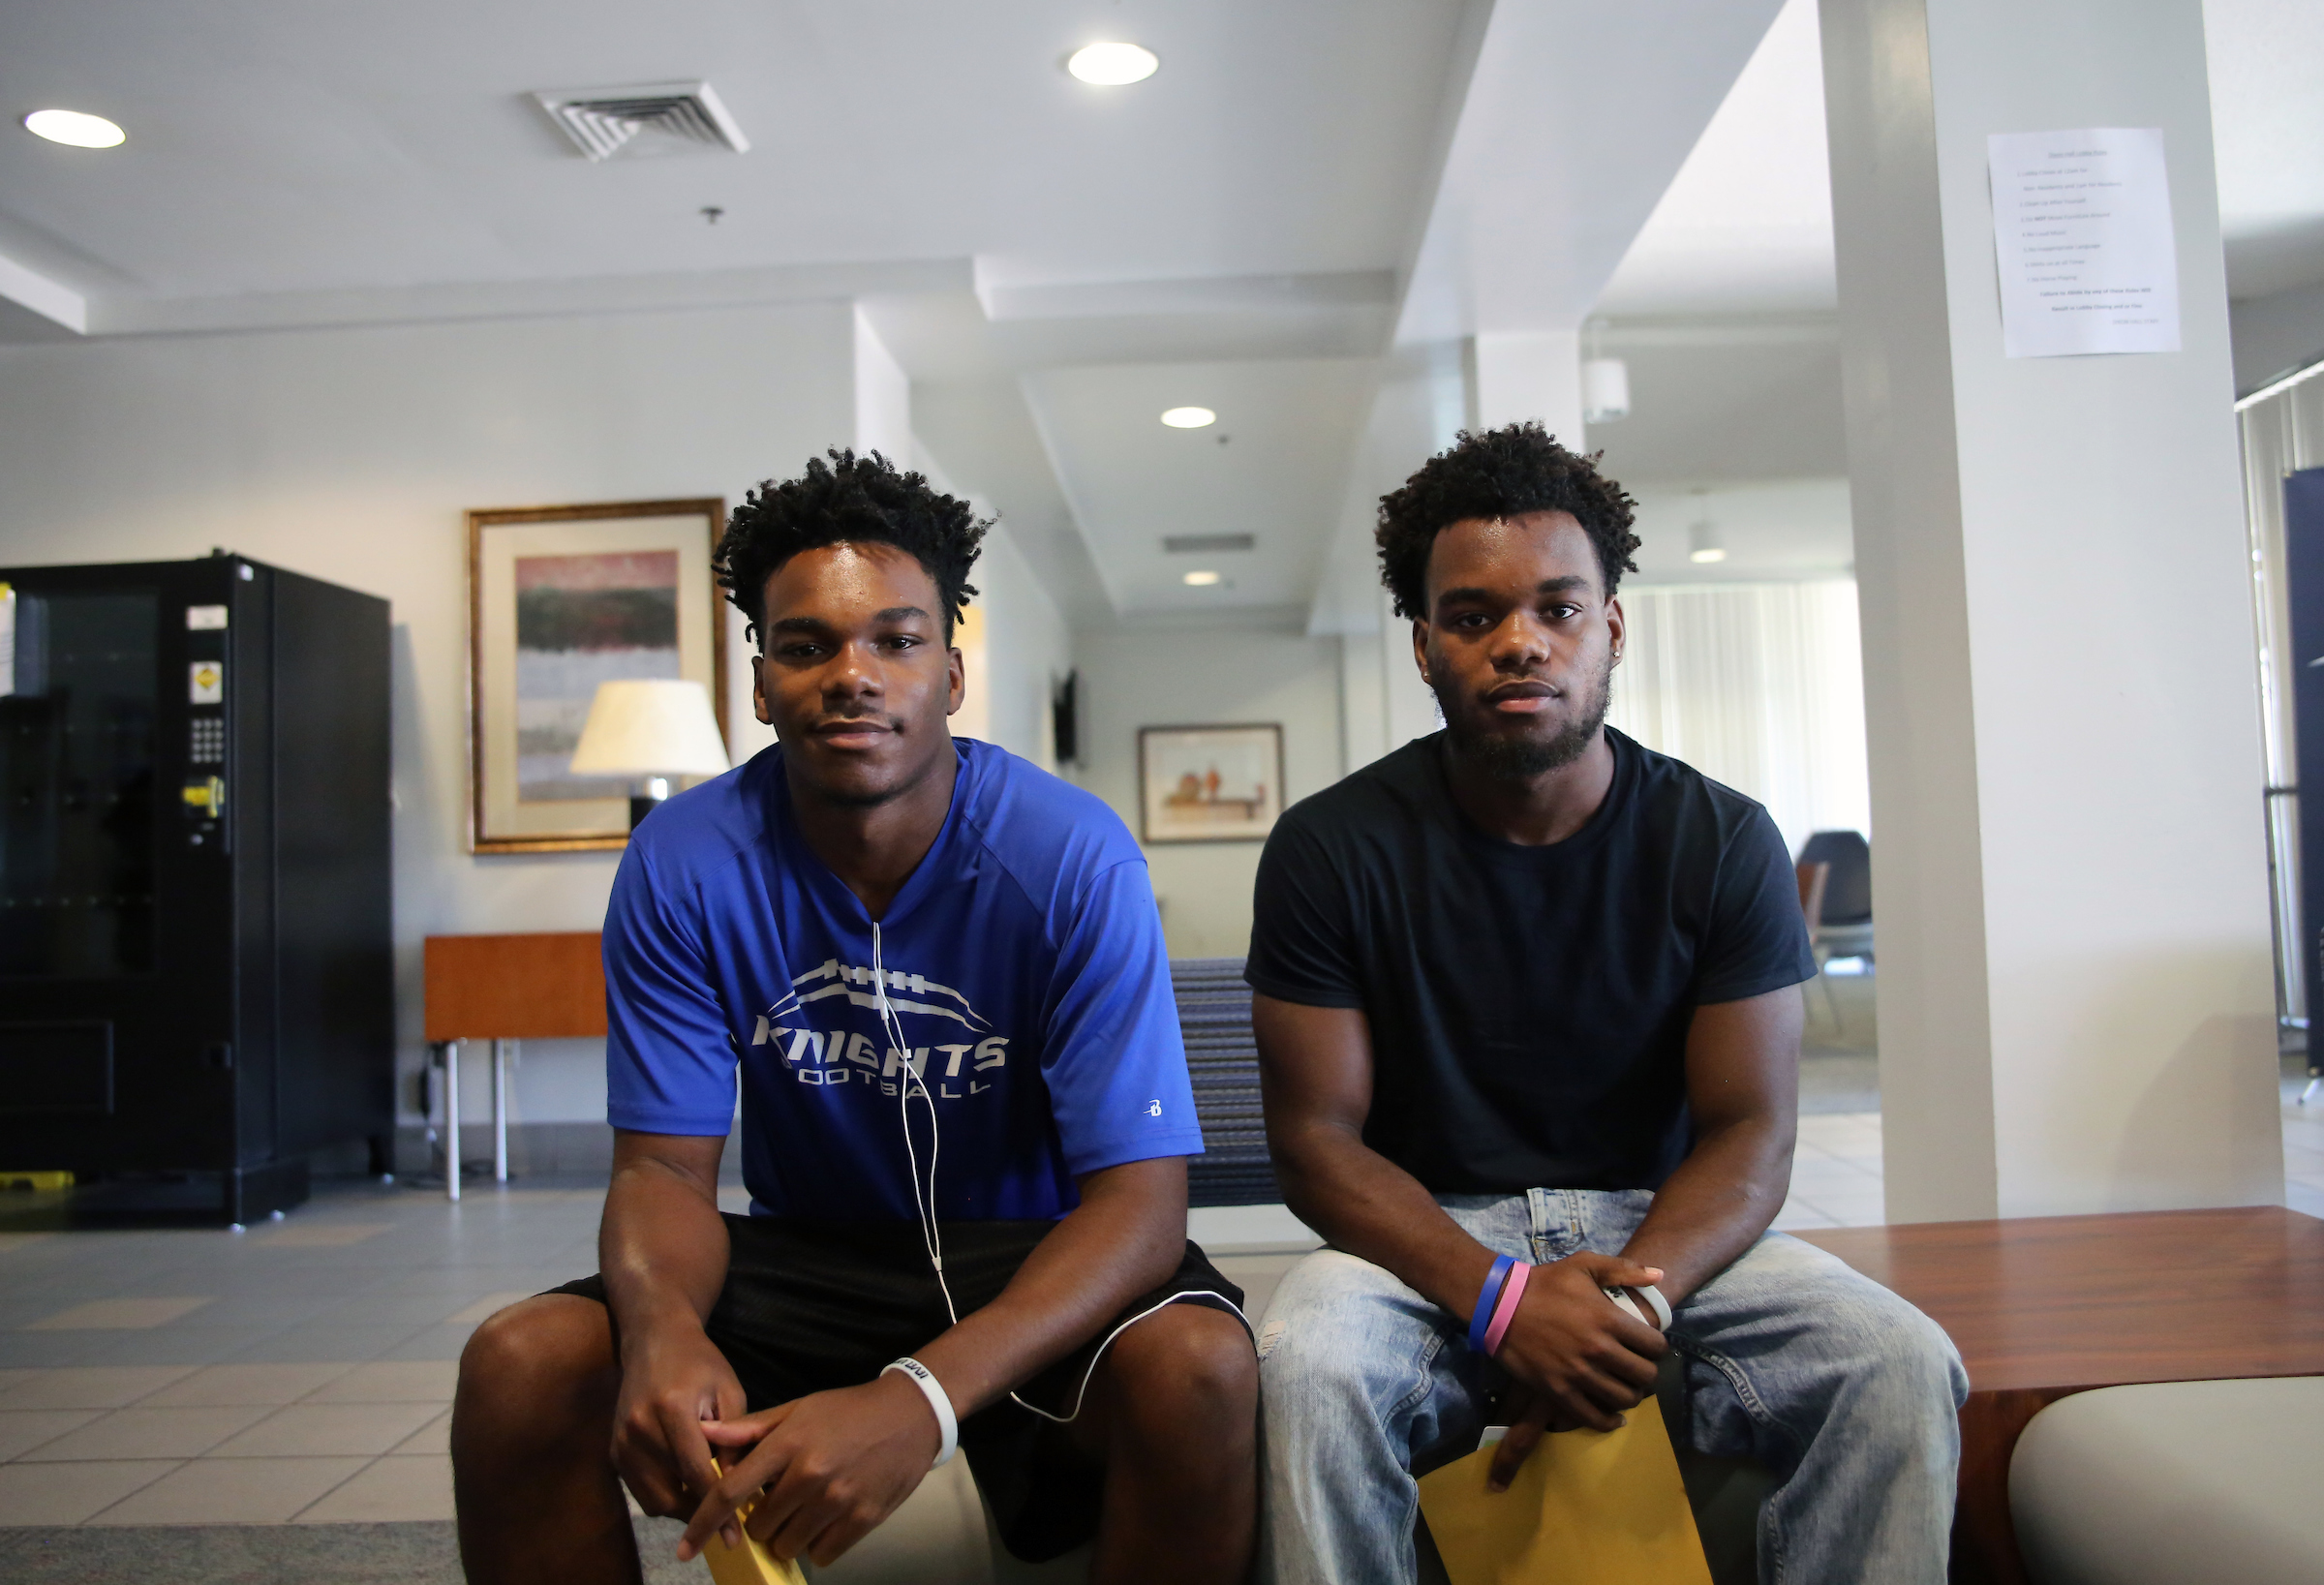 Twins Stedman (right) and Paul (left) Quartermaine are from Stockton, California. They have a host of family members who attended JSU including Senator Hillman Frazier. (Photo by Aron Smith/JSU)